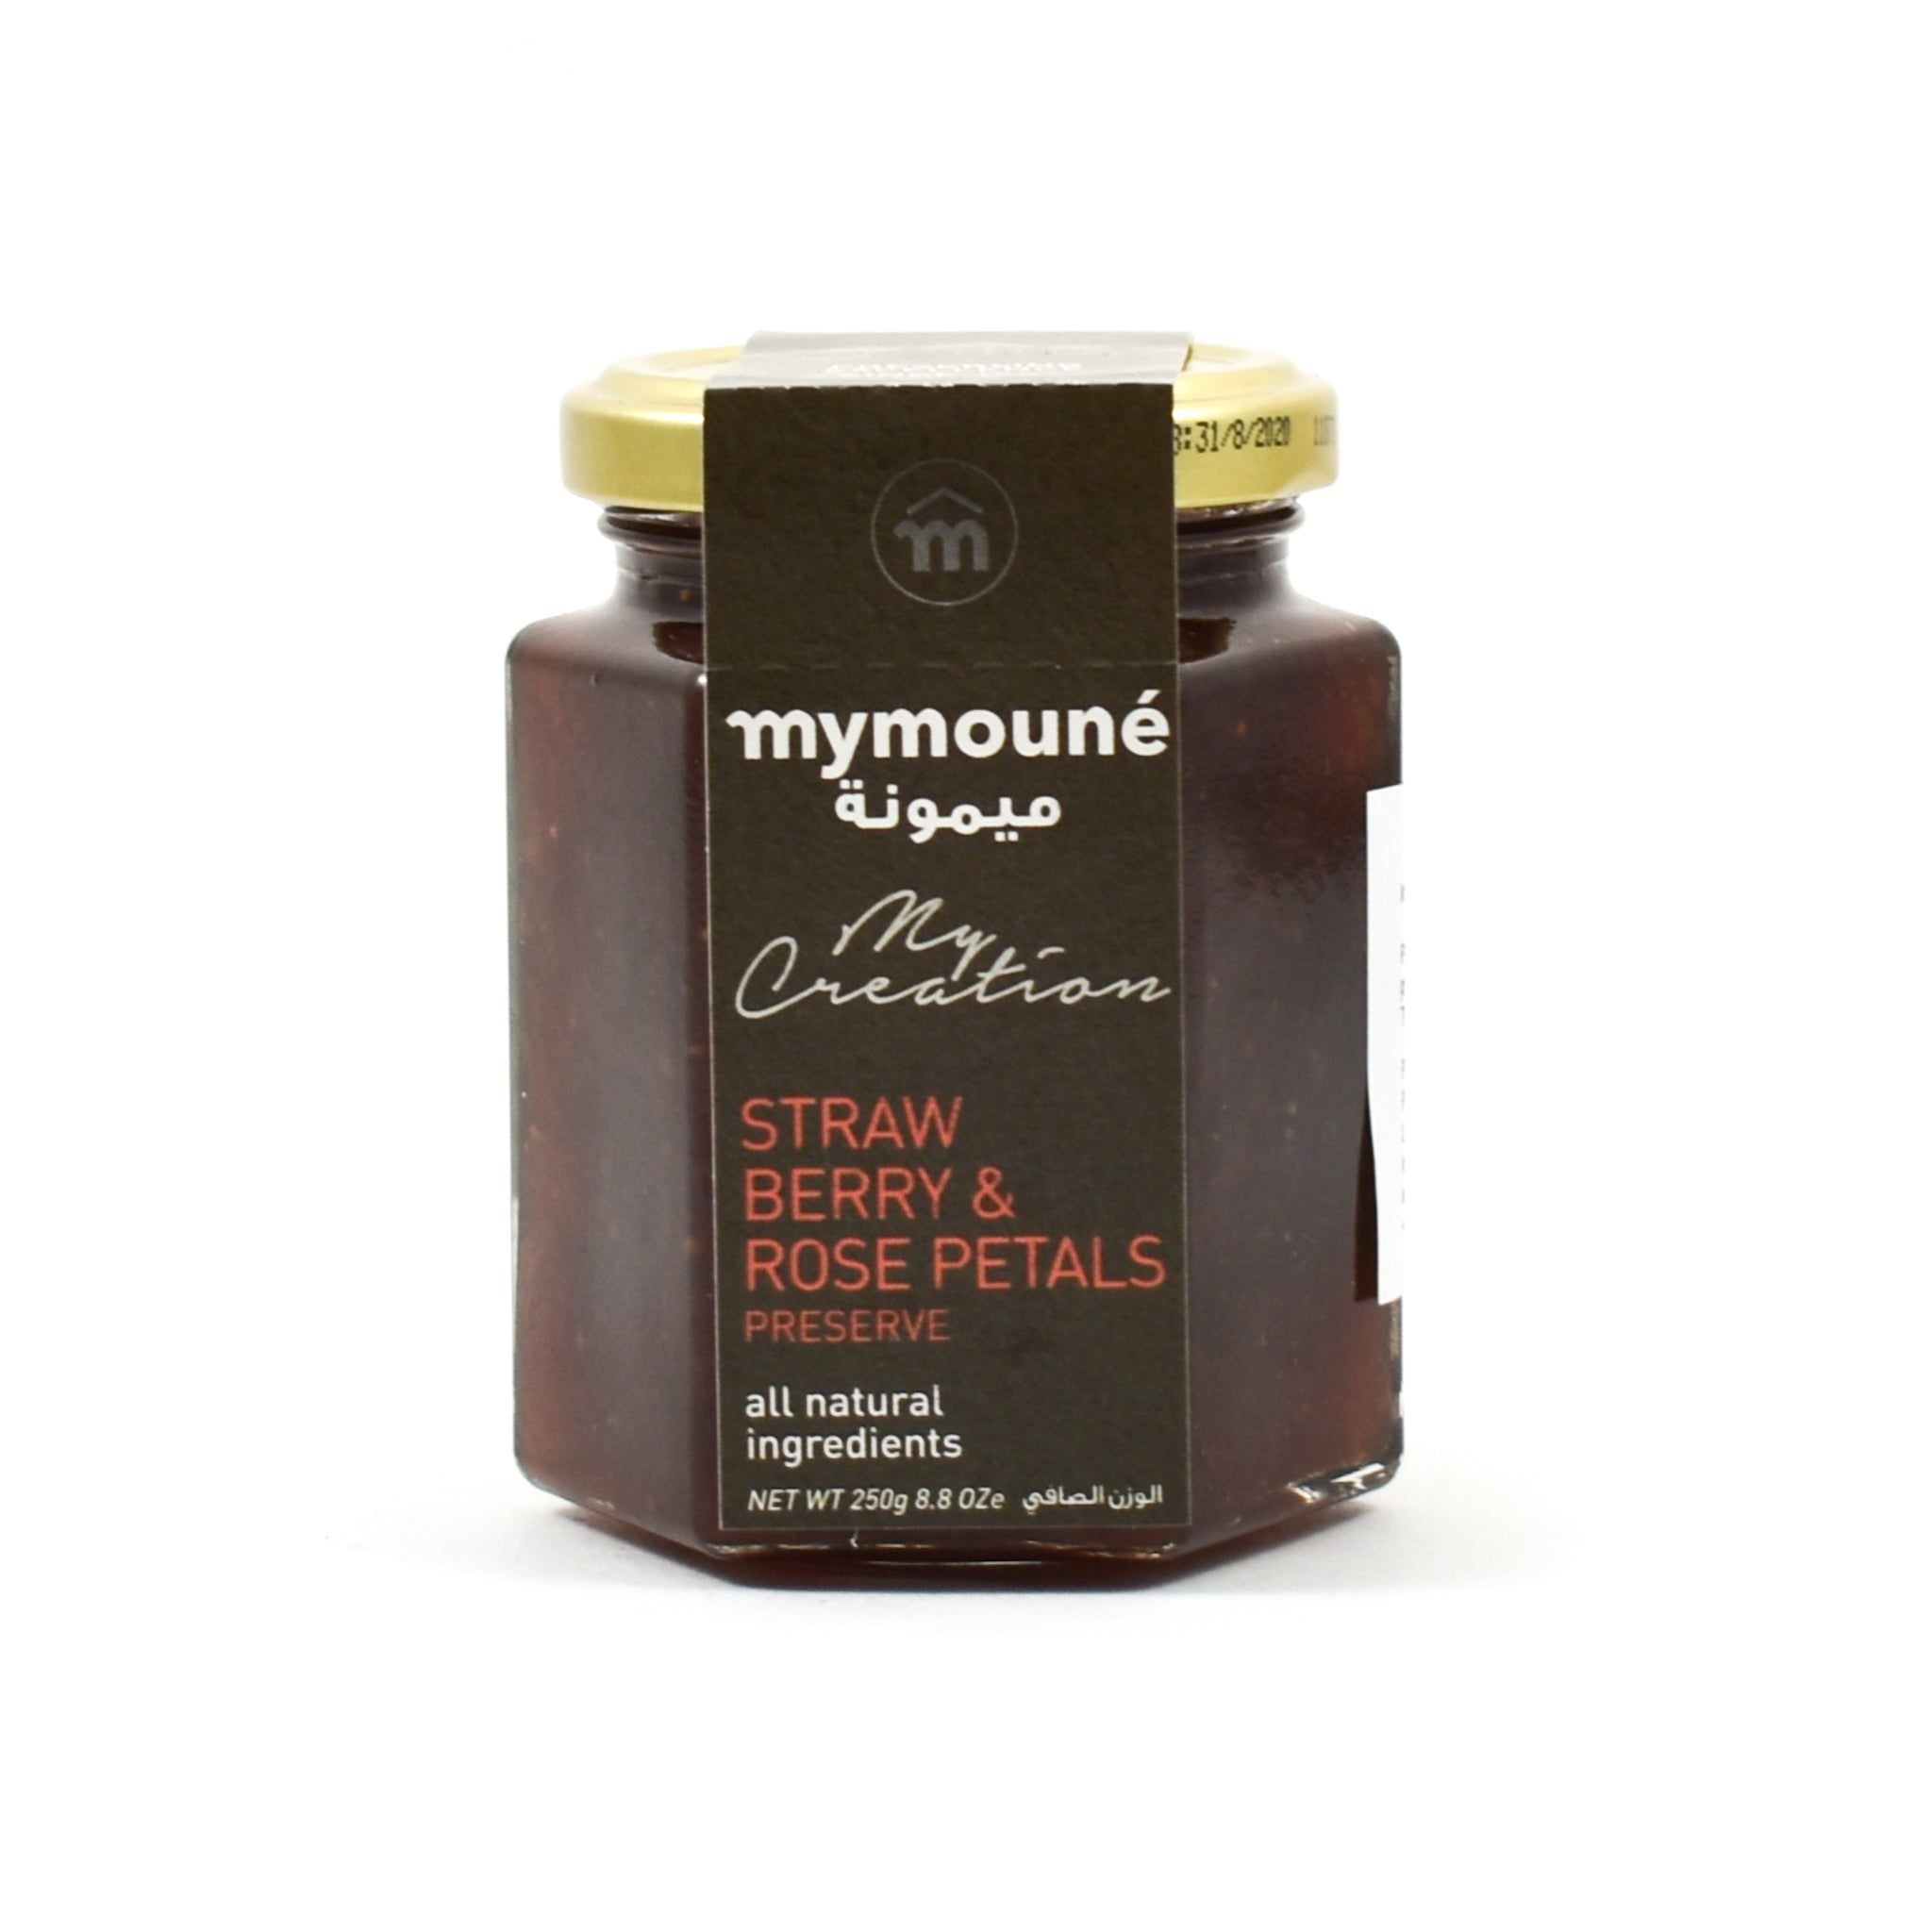 Mymoune Strawberry & Rose Petal Jam 250g Ingredients Jam Honey & Preserves